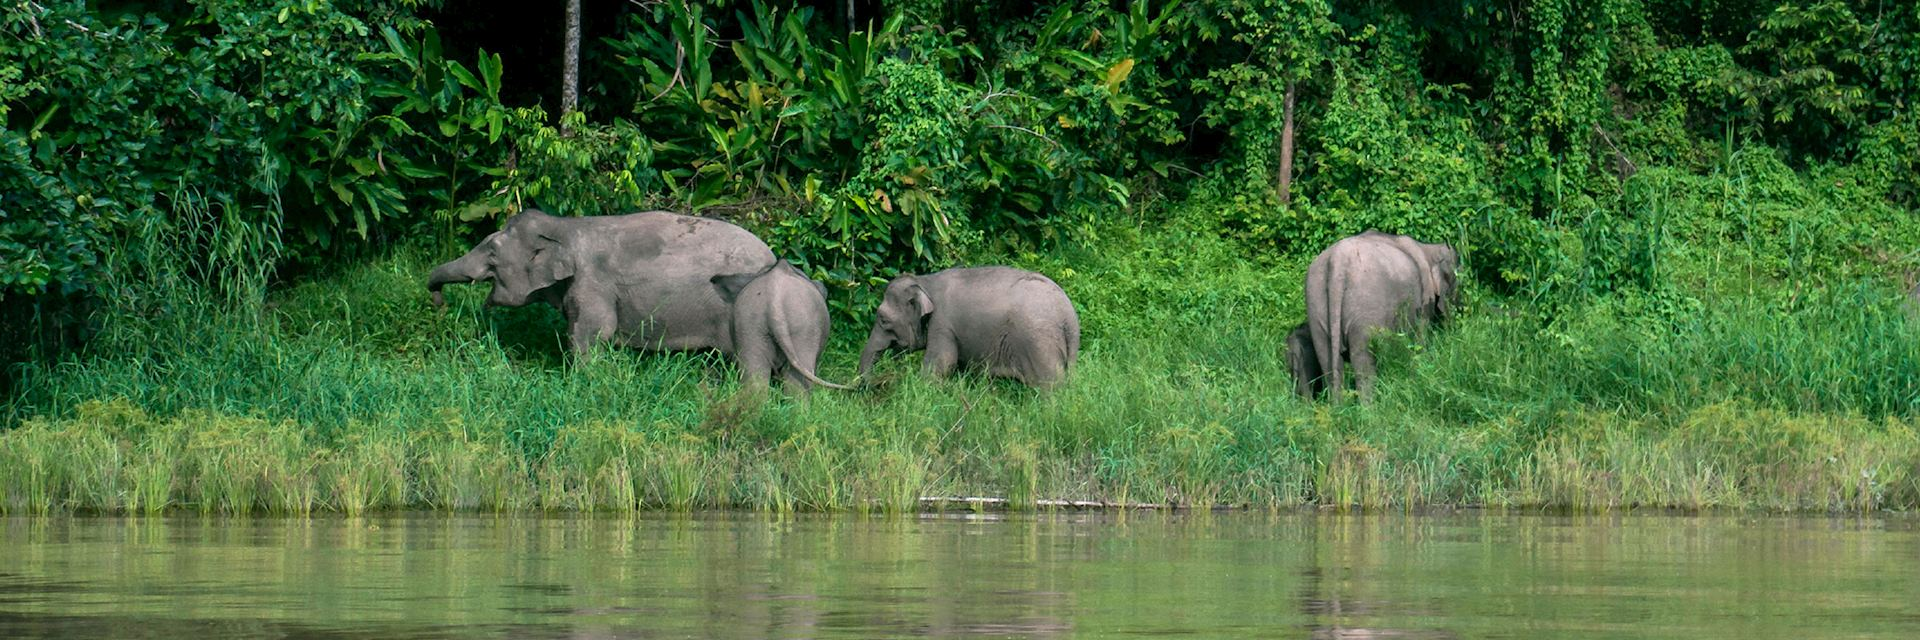 Elephants grazing at the Kinabatangan Wildlife Sanctuary